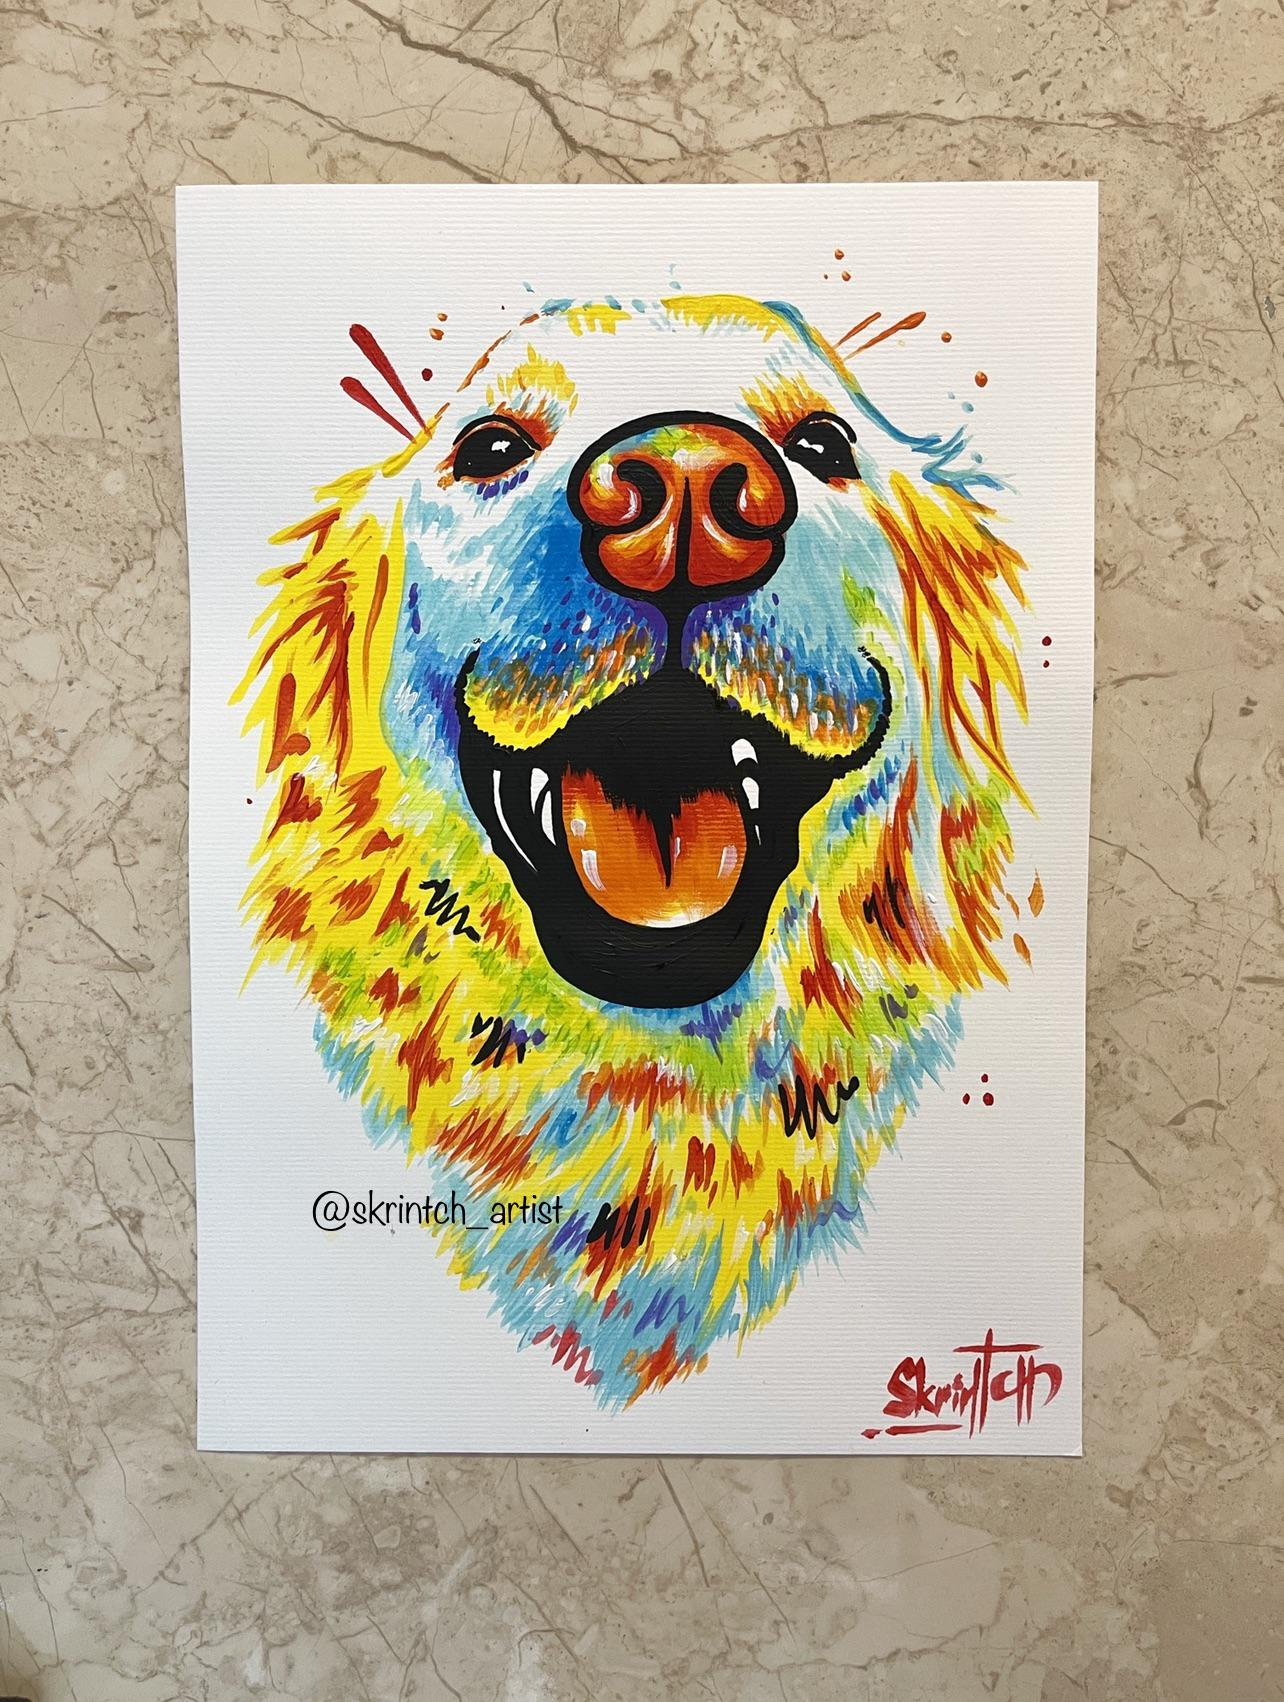 [Image] Art helps me stay sober for 6 years! I paint colourful pet portraits. I have time to paint several portraits like this for free. You can send me a photo if you want a colourful portrait of your or other pet